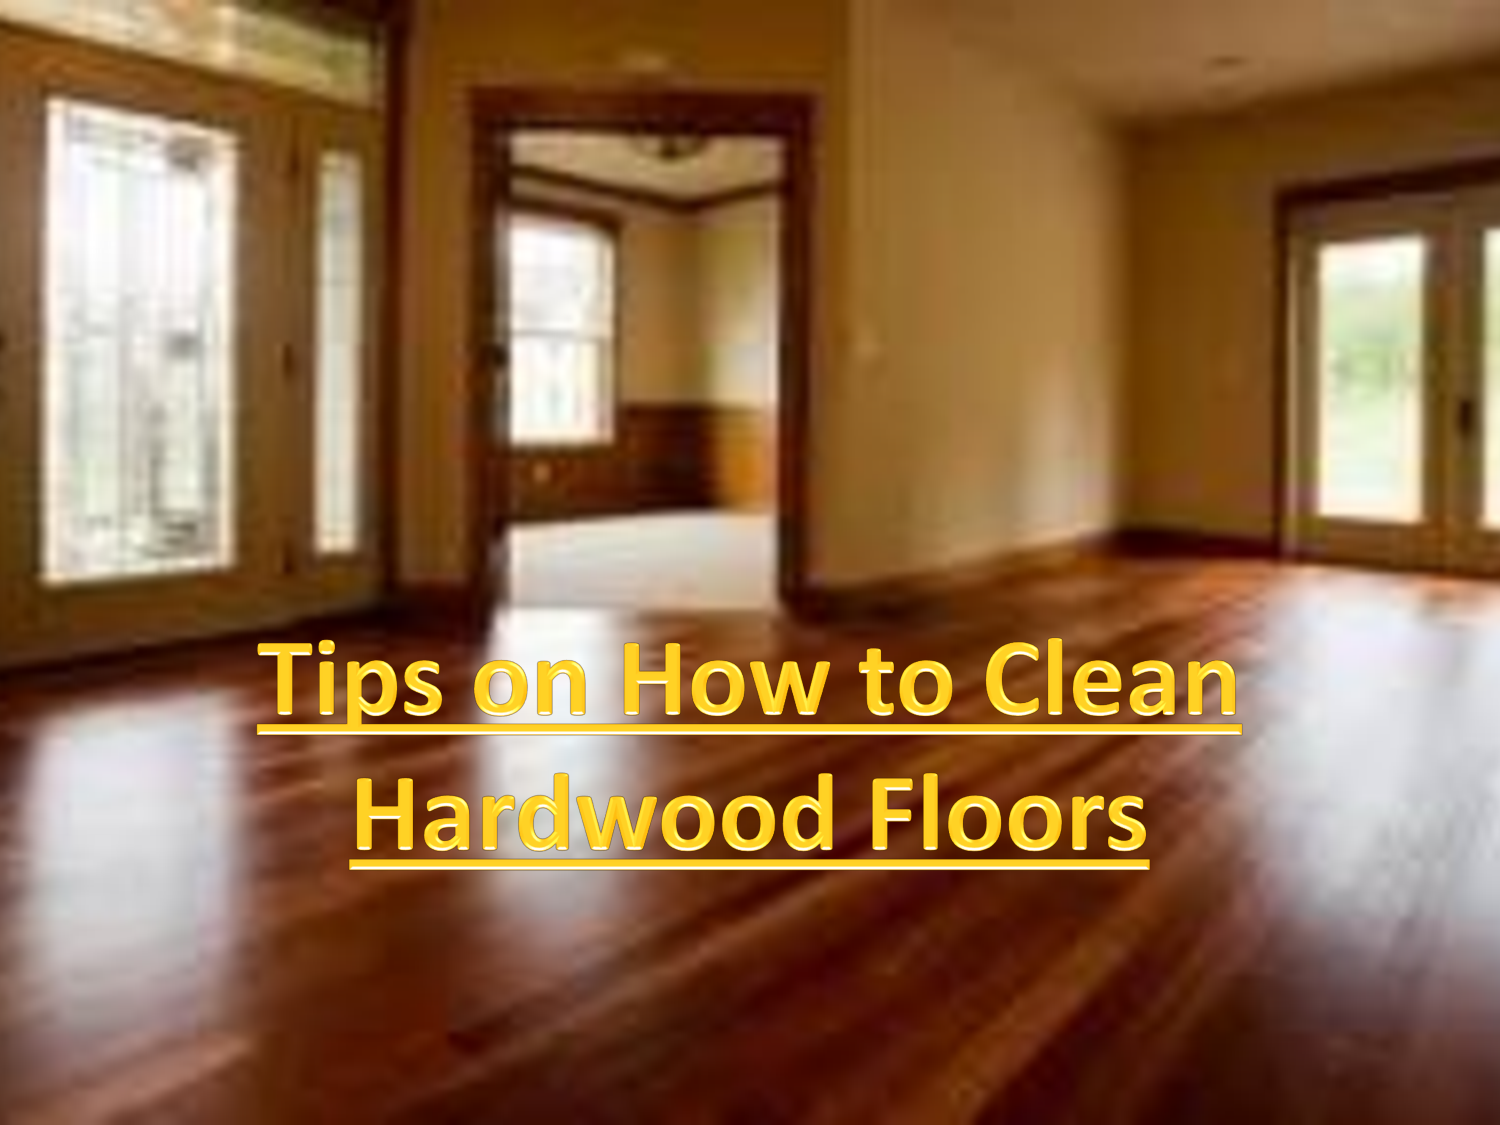 To damp mop wood floors use plain water or a water based for Hardwood floors vinegar